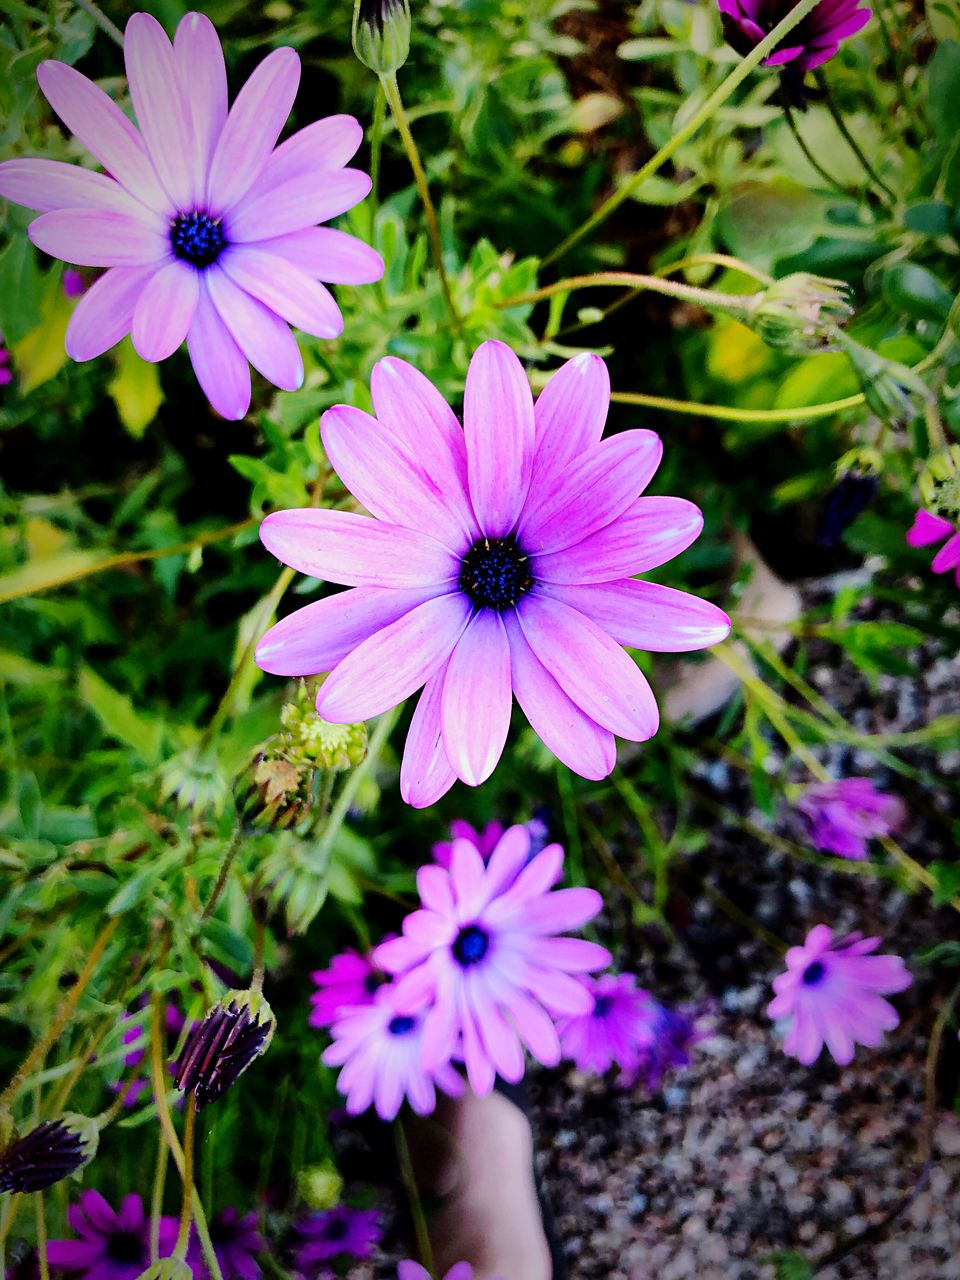 flowering plant, flower, freshness, plant, vulnerability, fragility, petal, flower head, beauty in nature, inflorescence, growth, osteospermum, close-up, purple, nature, day, pollen, pink color, focus on foreground, high angle view, human limb, finger